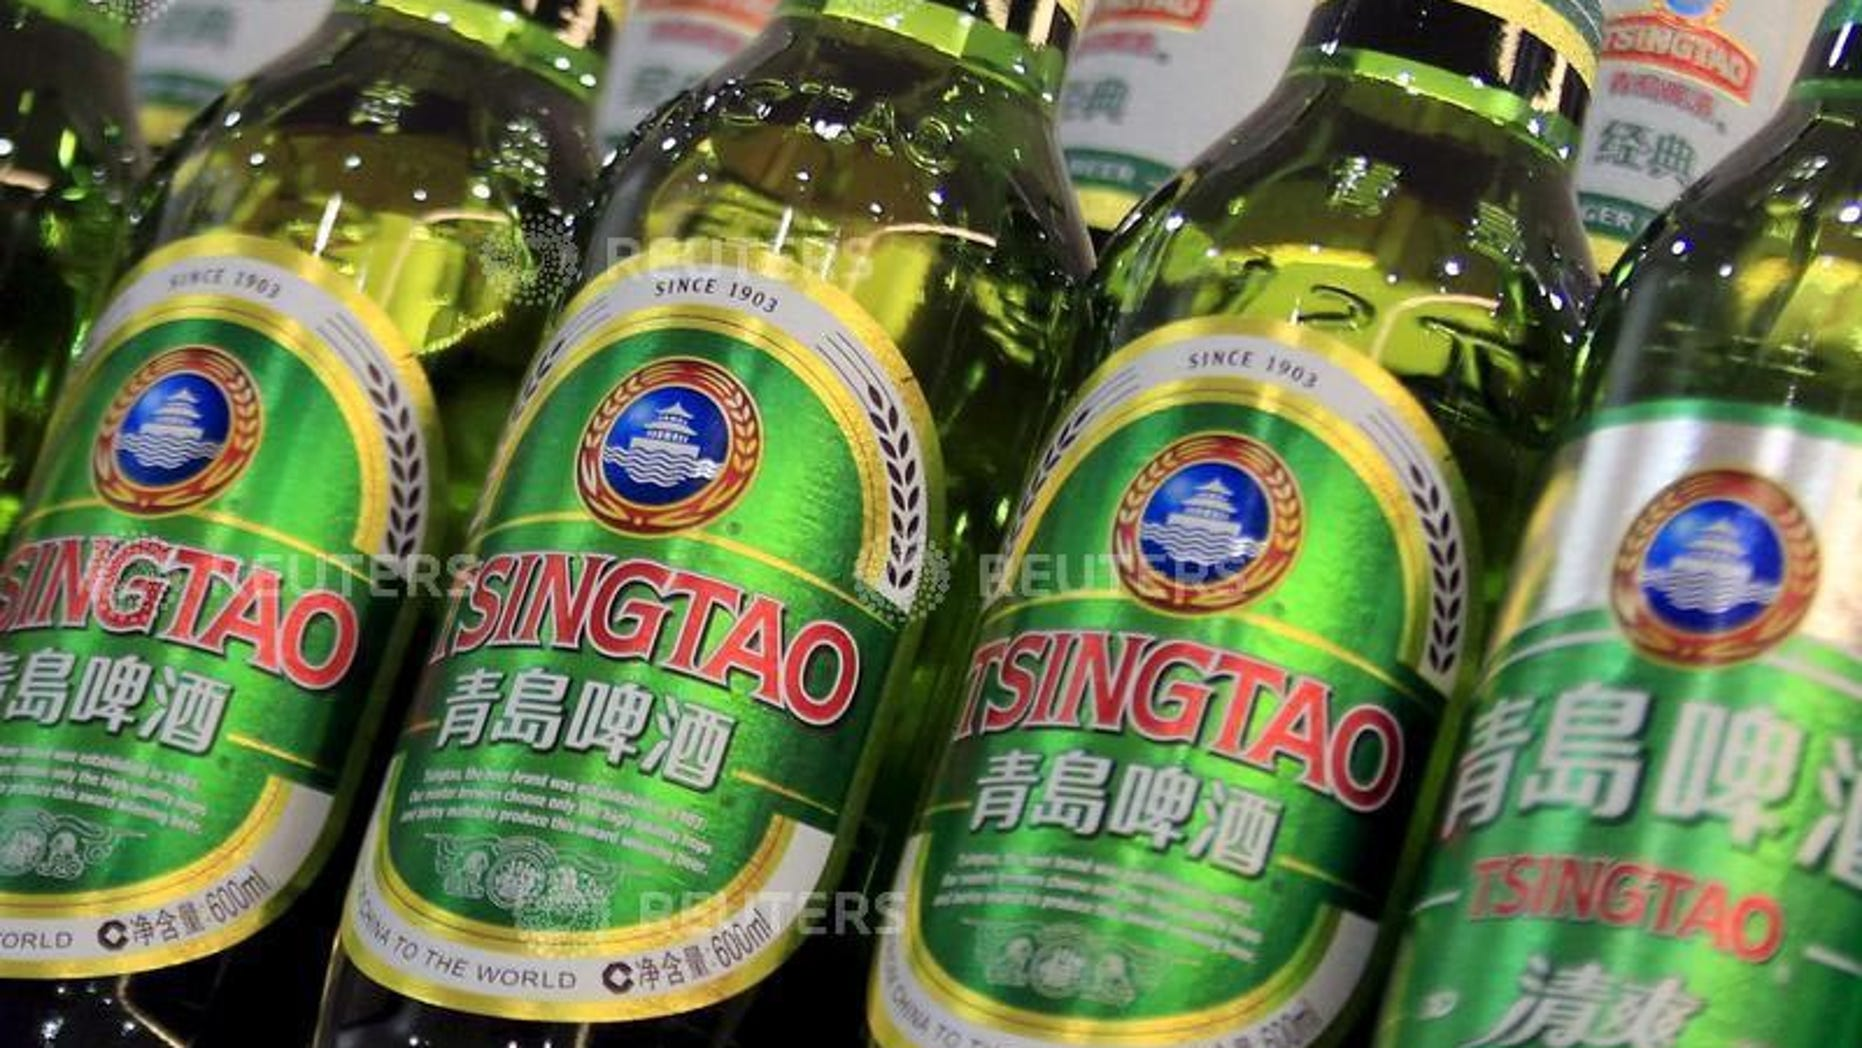 Bottles of Tsingtao beer are placed on shelves at a supermarket in Shanghai March 28, 2016. (REUTERS/Aly Song)